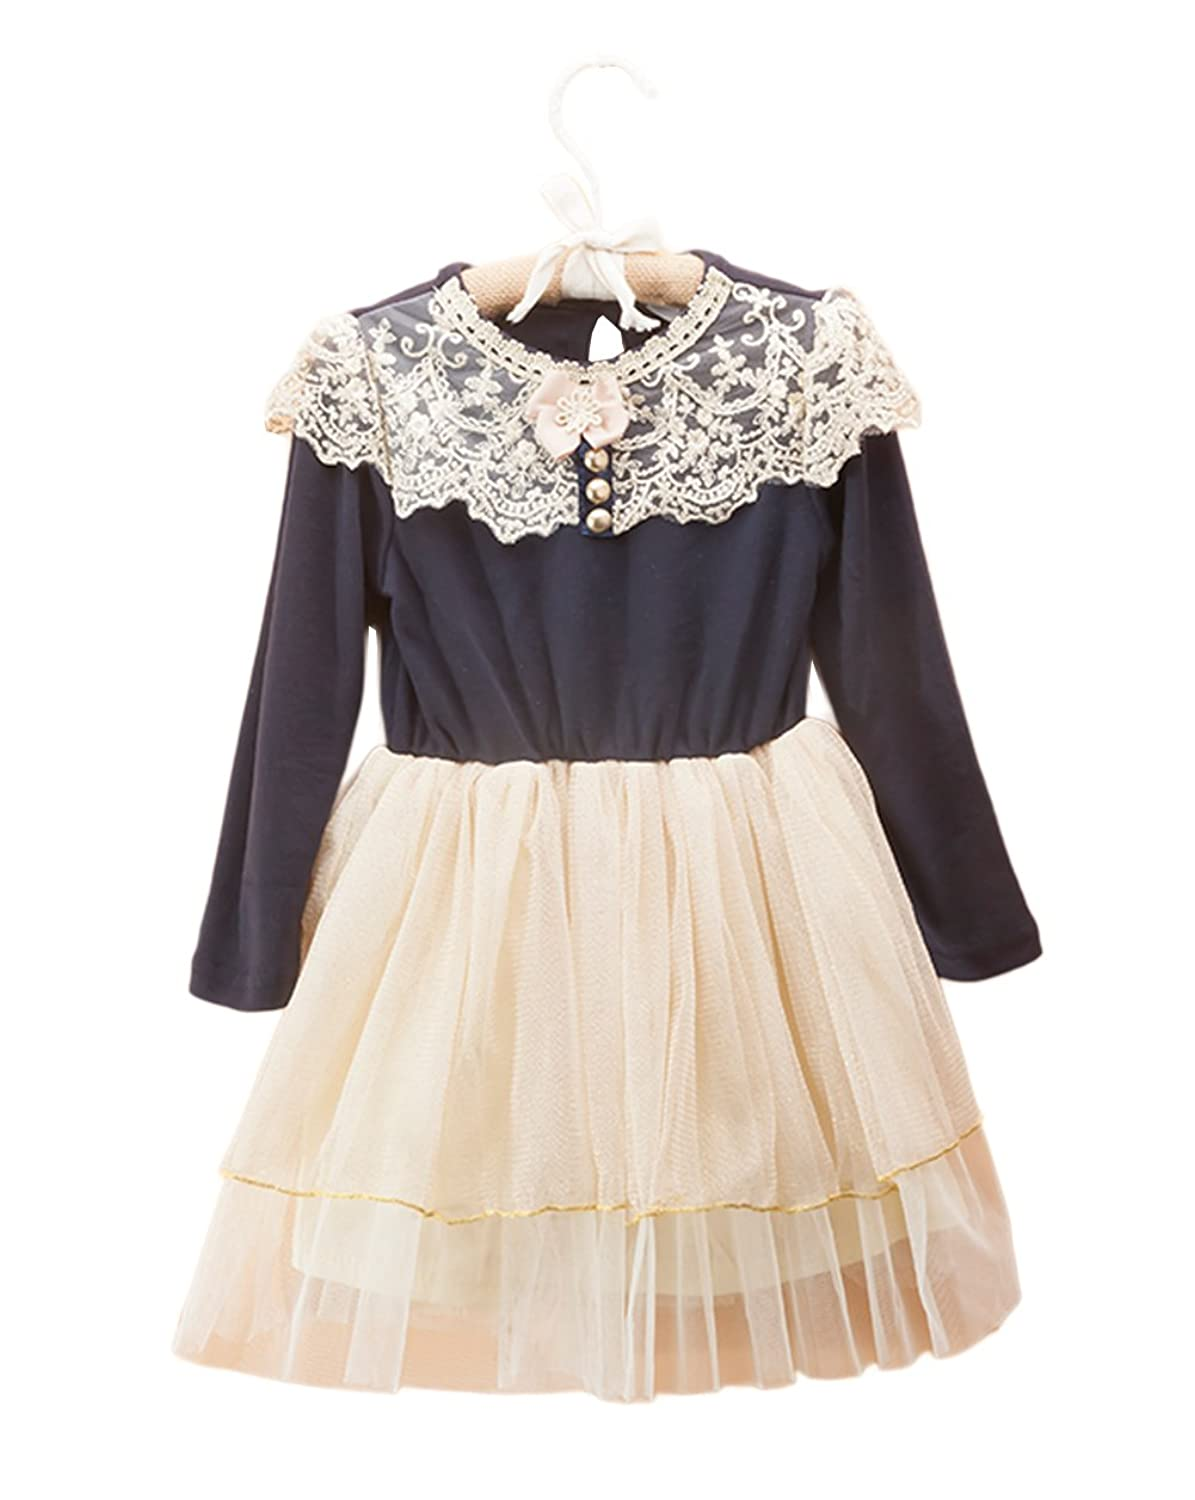 Vintage Style Children's Clothing: Girls, Boys, Baby, Toddler StylesILove Classic Victorian Embroidered Lace Tutu Girl Dress $22.99 AT vintagedancer.com